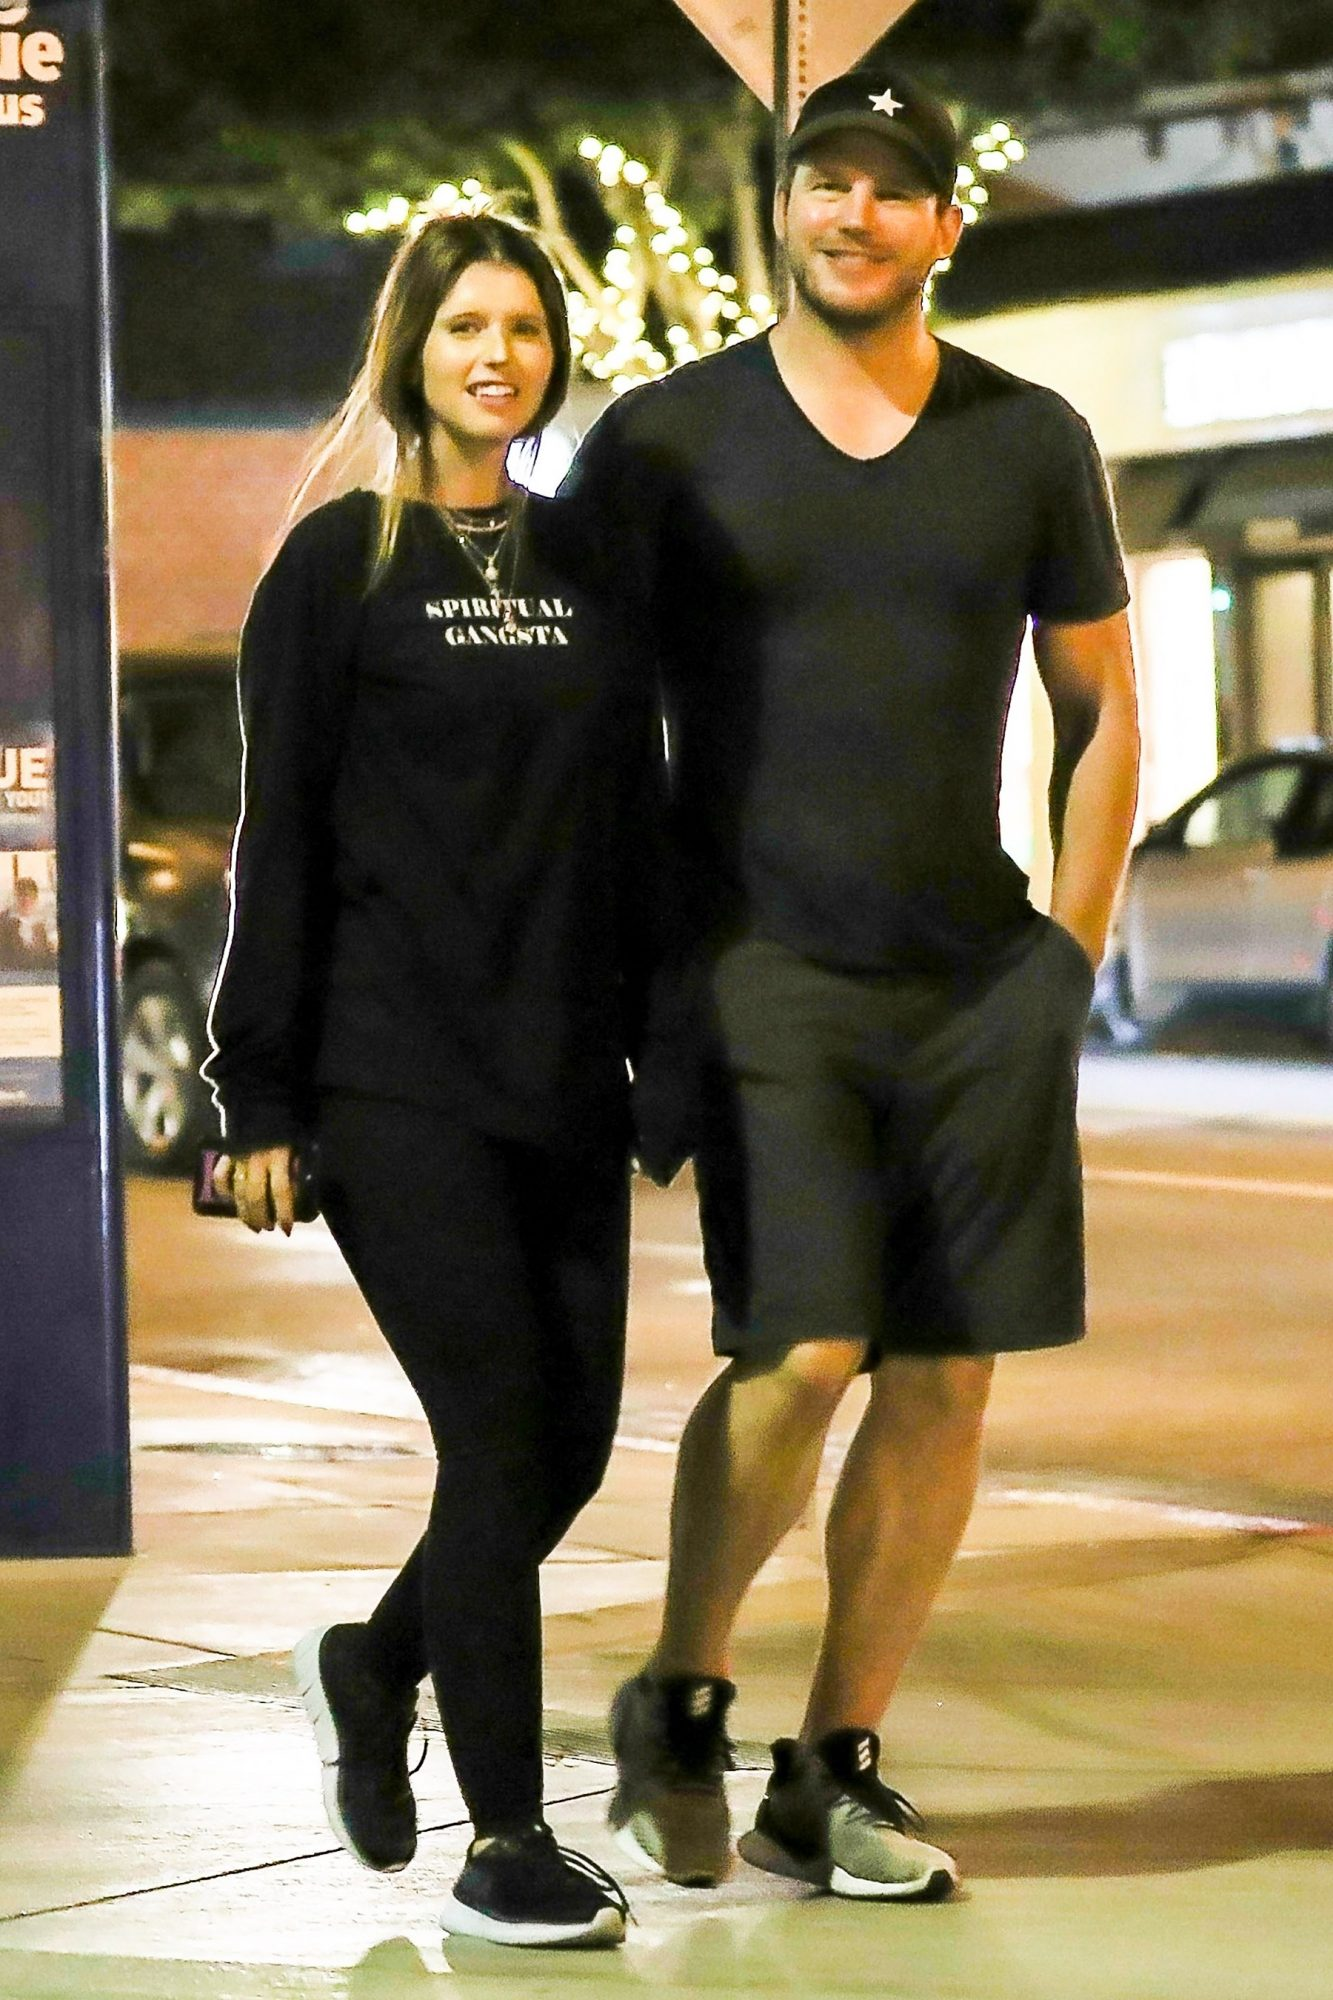 Chris Pratt and Katherine Schwarzenegger are smitten after a date night at R+D Kitchen